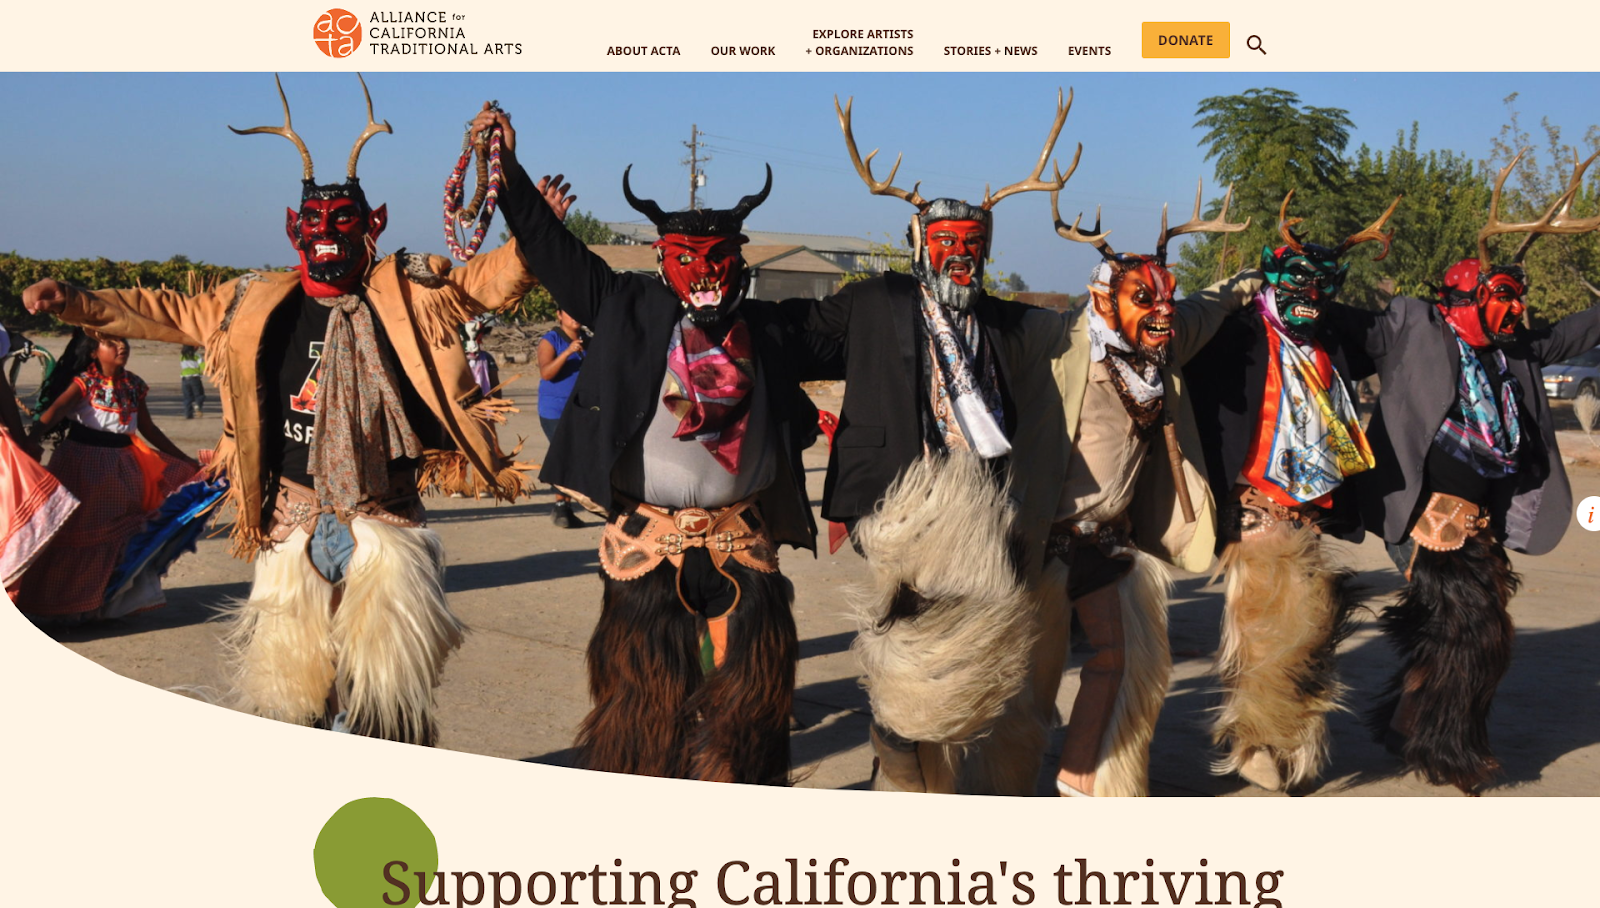 Alliance for California Traditional Arts